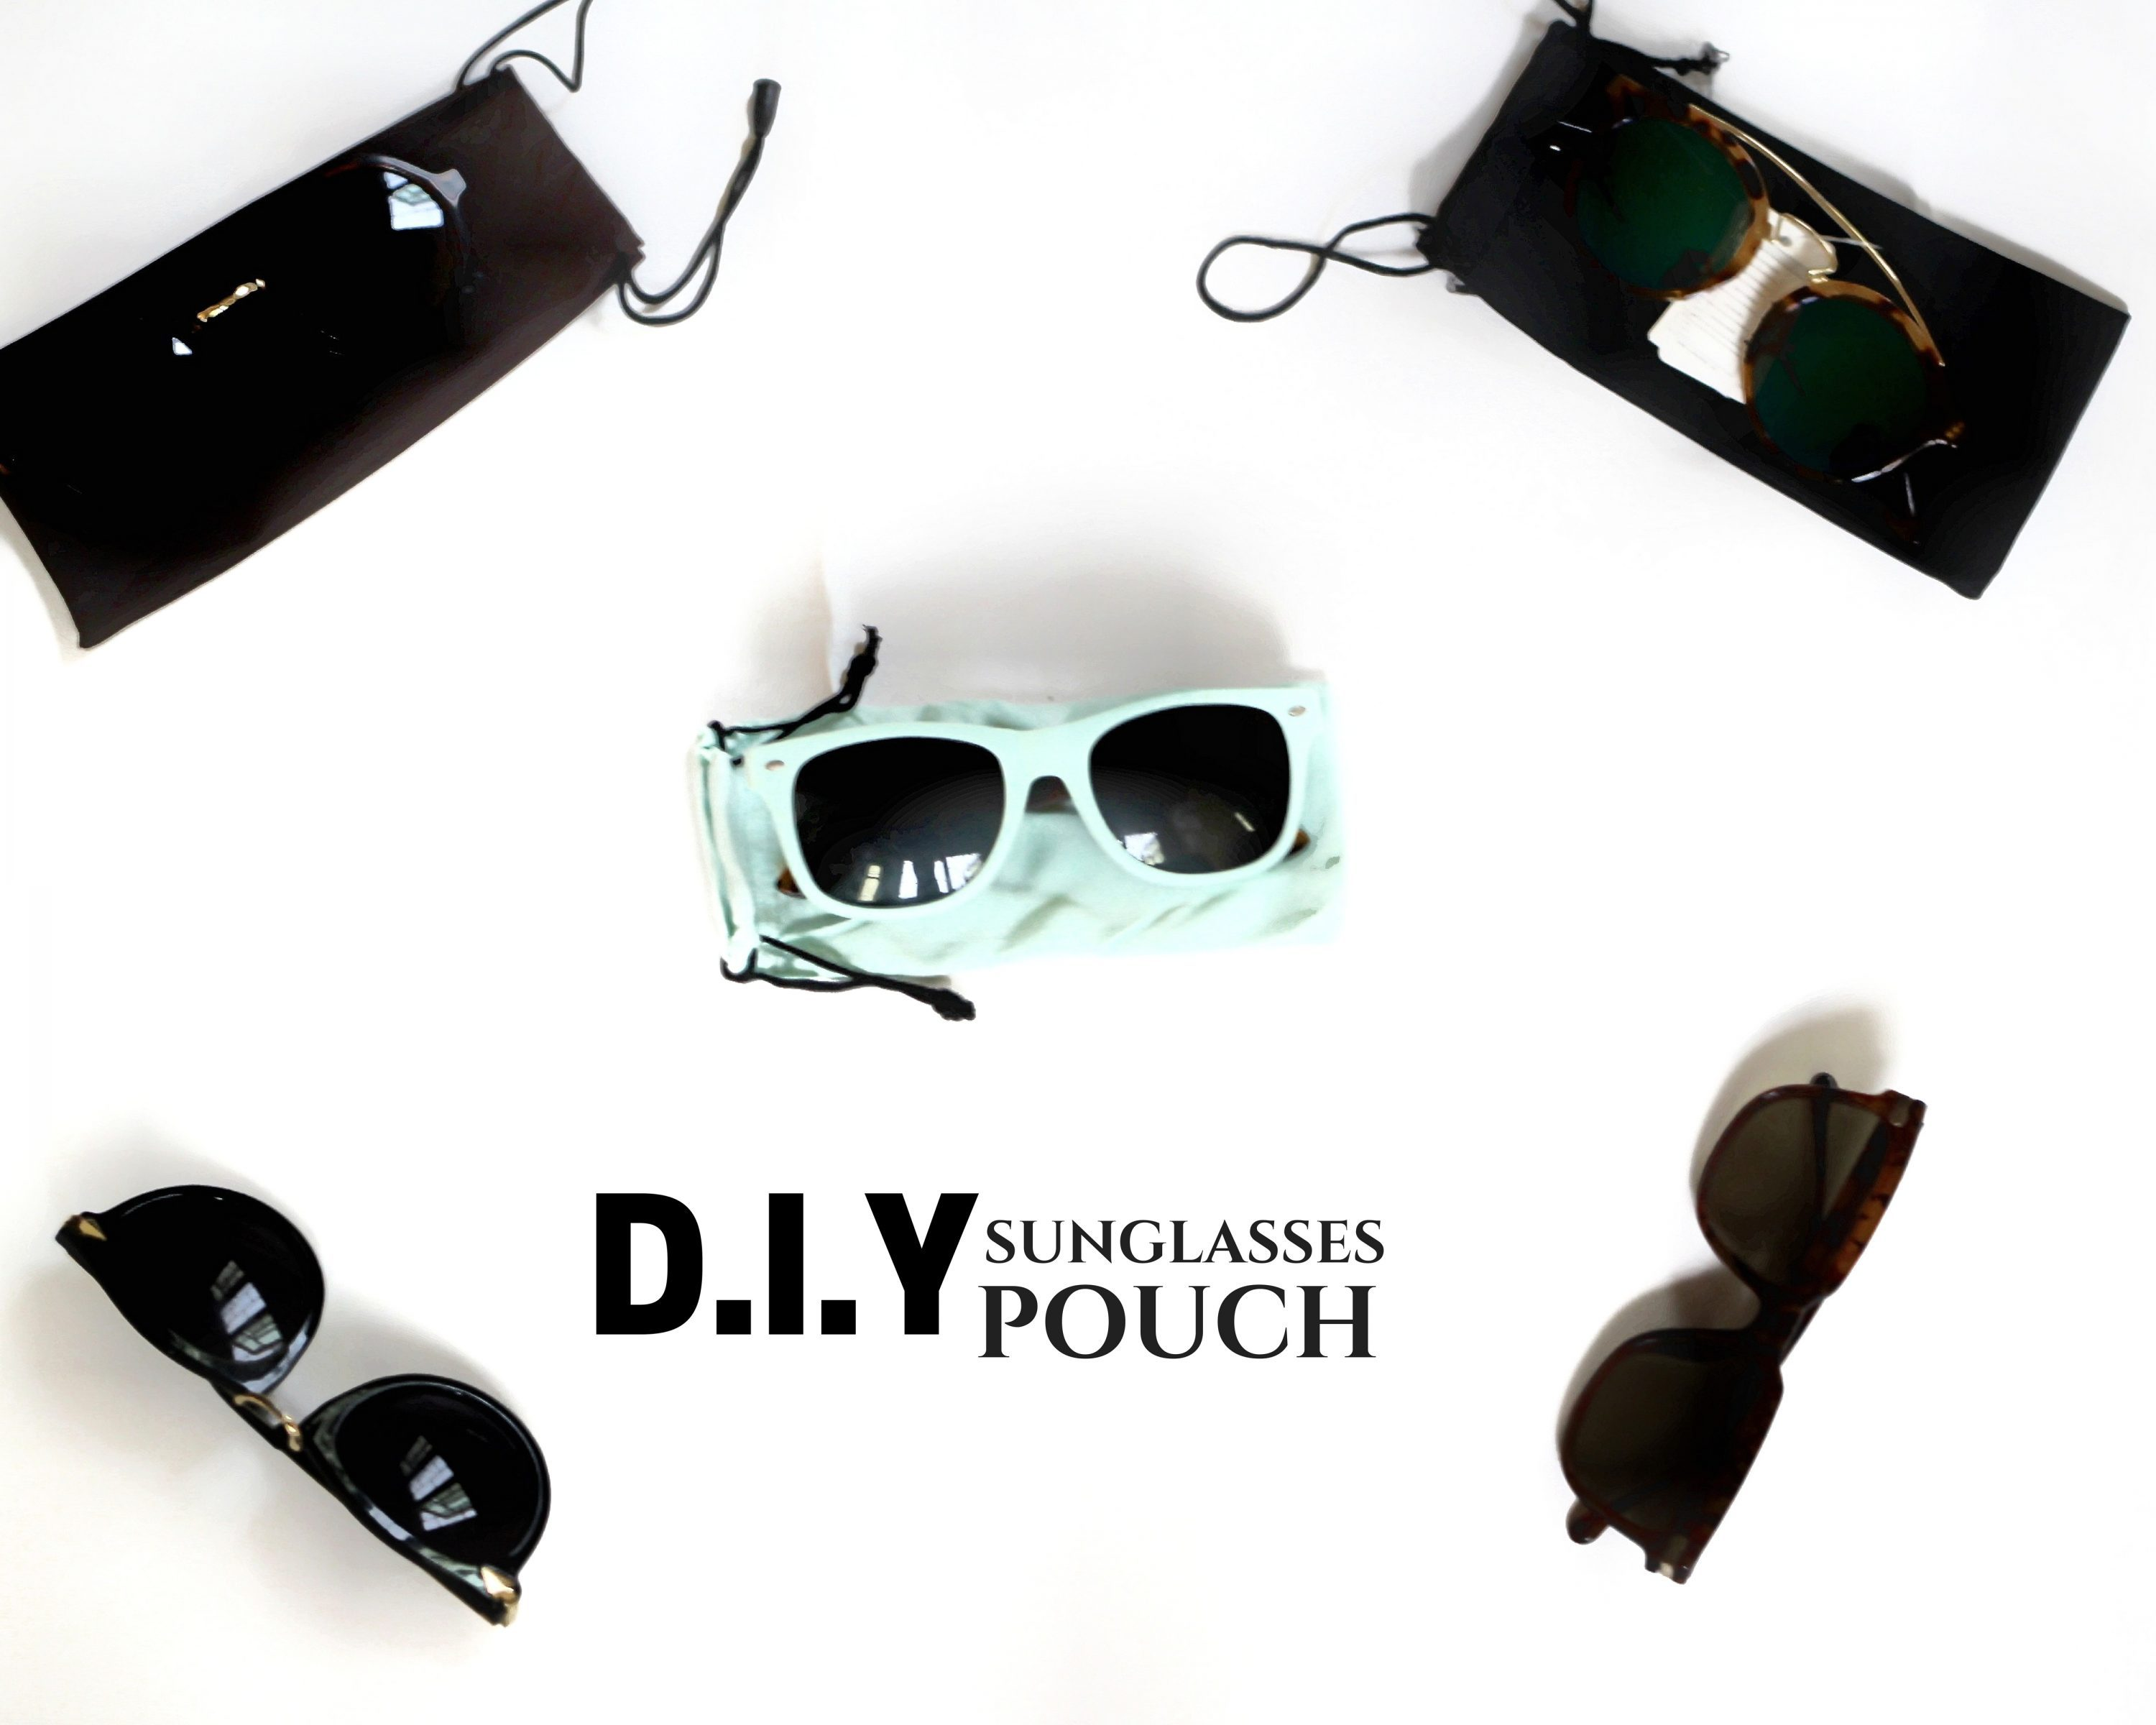 DIY Sunglasses Pouch